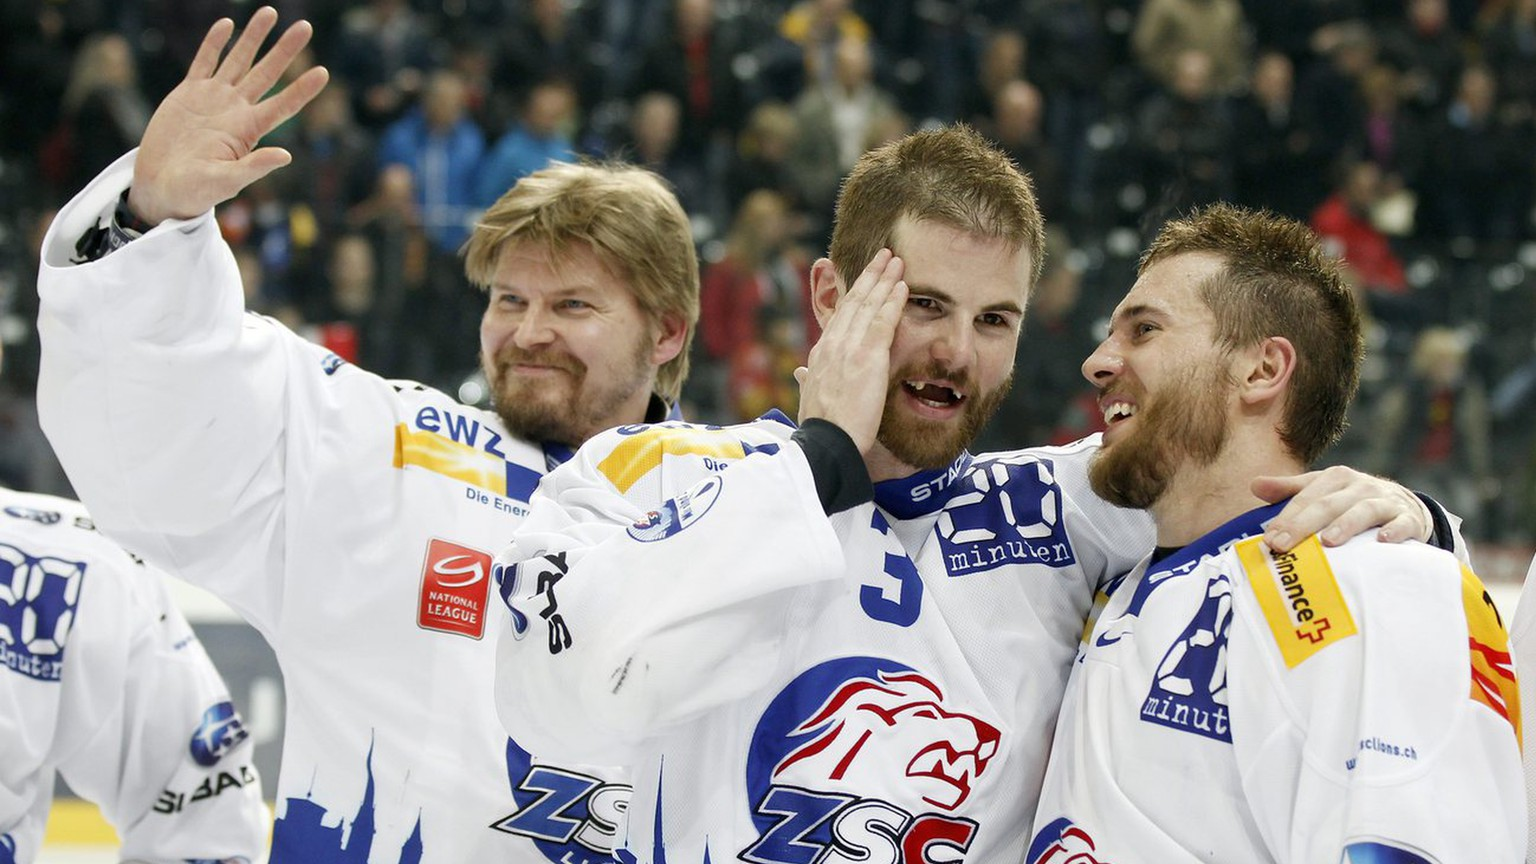 Von links: Die ZSC Spieler Ari Sulander, Steve McCarthy und Jeff Tambellini nach dem siebten Playoff-Finalspiel der National League A zwischen dem SC Bern und den ZSC Lions am Dienstag, 17. April 2012 in der Postfinance-Arena in Bern. (KEYSTONE/Peter Klaunzer)